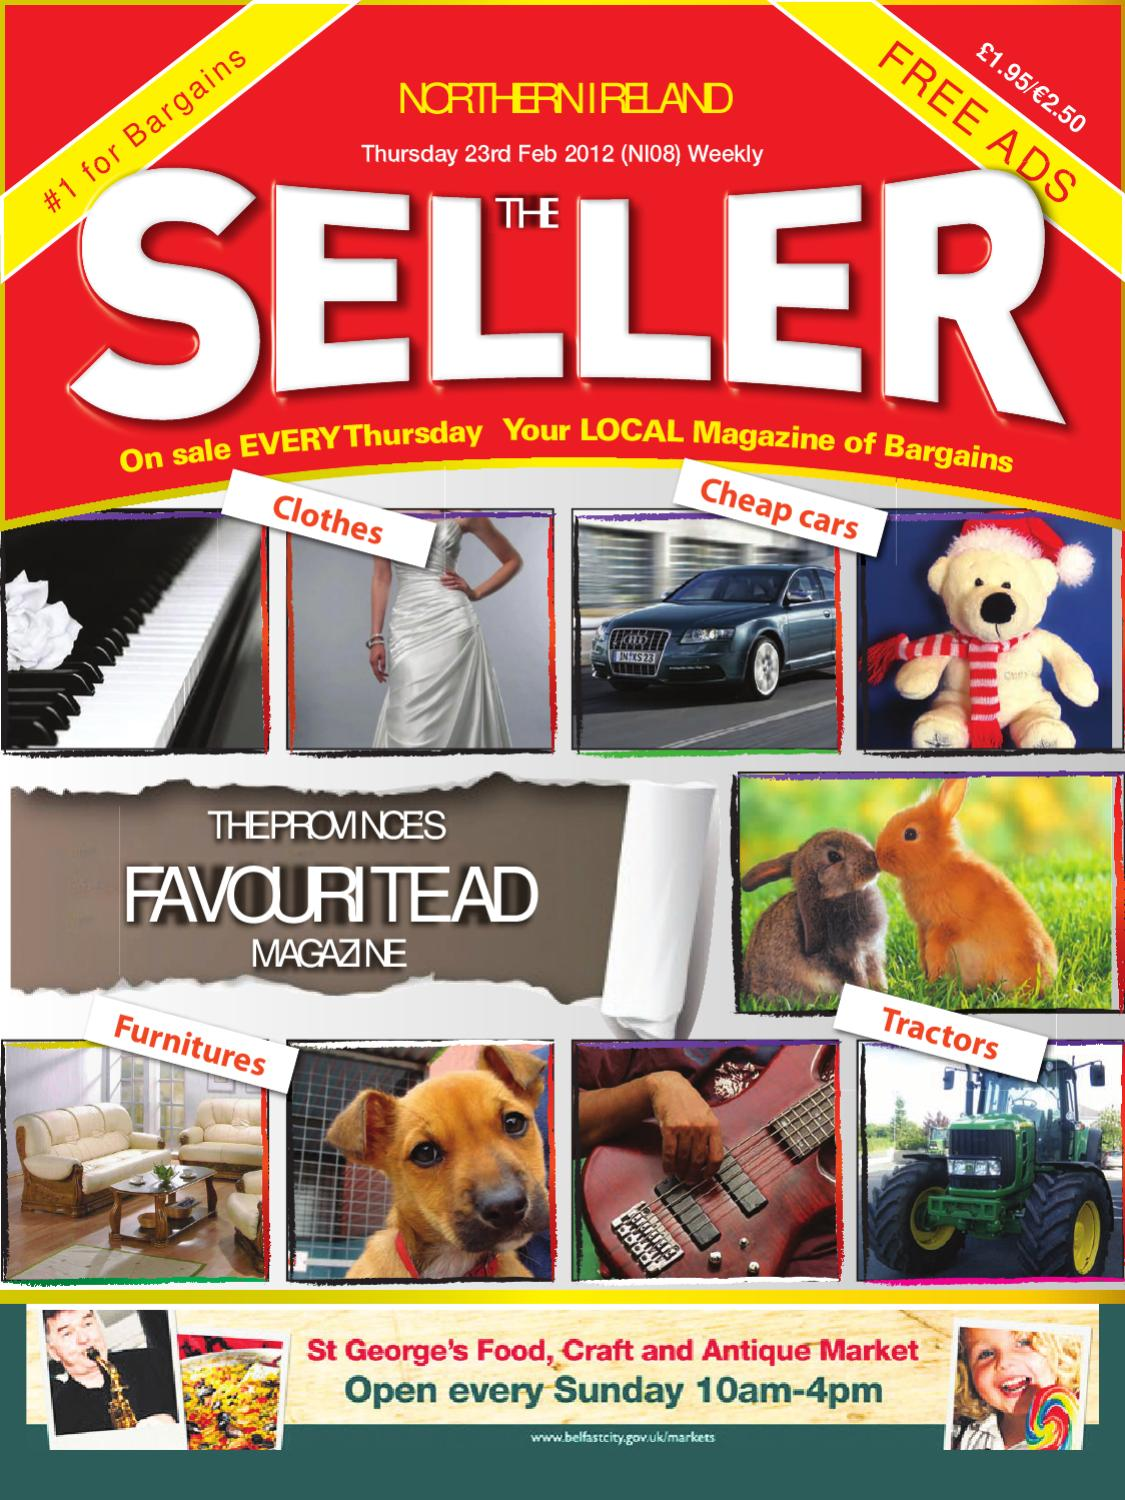 The Seller Ni Issue 13 By Ids Media Group Ltd Issuu Comport Carpet Karpet Mercy E200 Compressor Deluxe 12cm